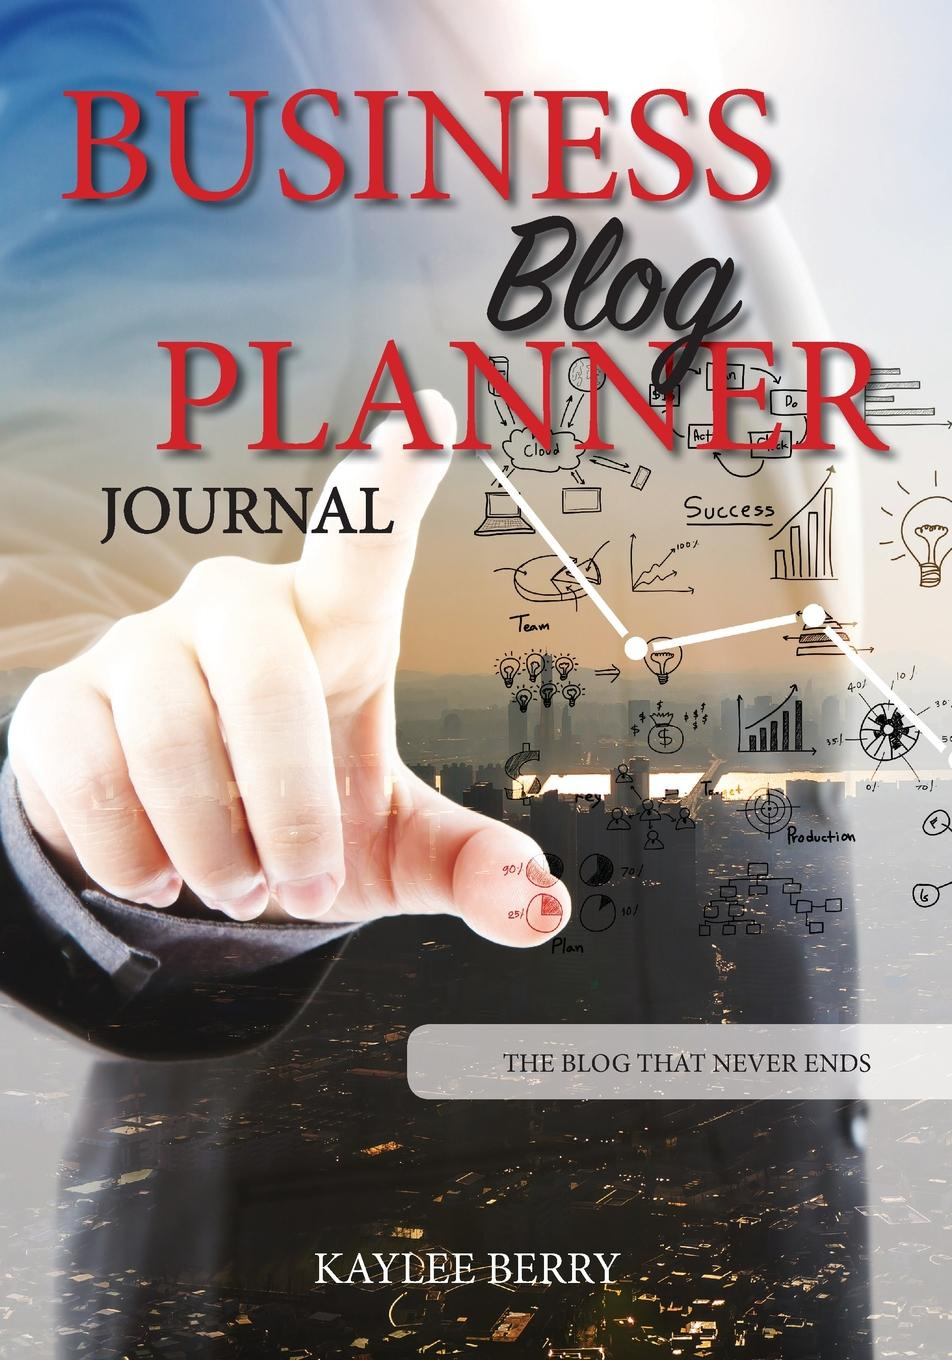 Kaylee Berry Business Blog Planner Journal - Corporate Bloggers Content Creator. Never run out of things to blog about again kaylee berry lifestyle blog planner journal lifestyle blogging content planner never run out of things to blog about again